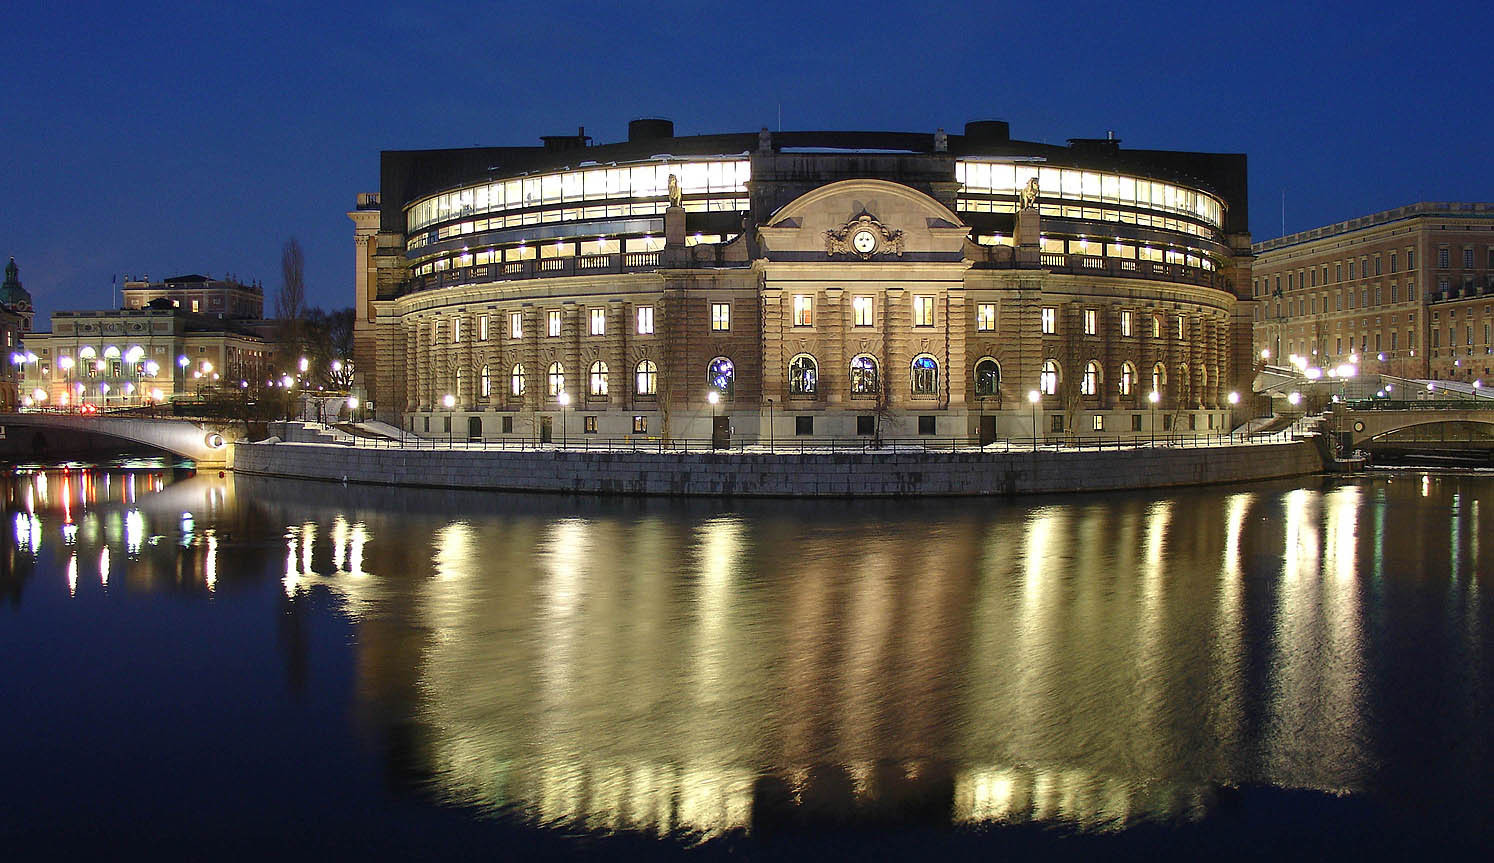 The Swedish Government at the country's Parliament – the Riksdag – has yet to announce whether or not it will back Stockholm Åre 2026 with the official deadline of April 12 less than a week away ©Wikipedia